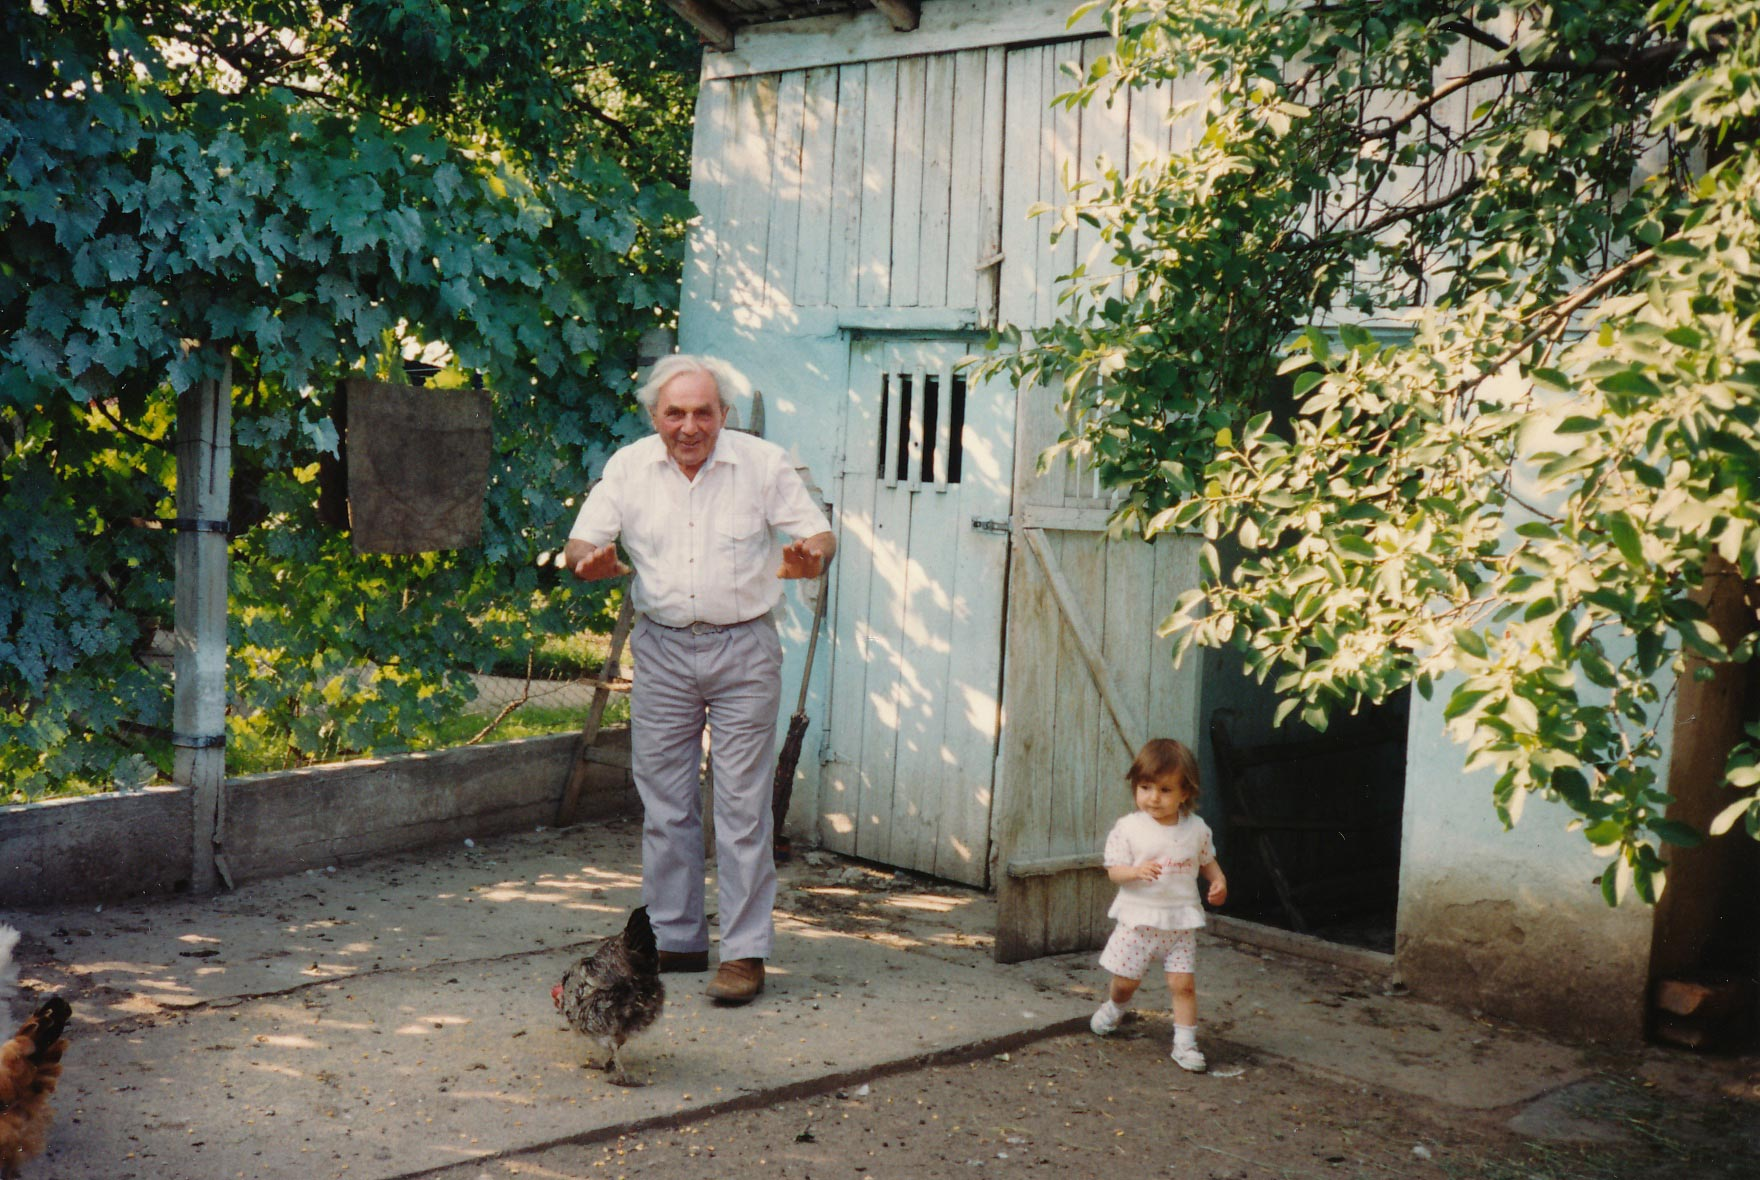 colour picture of grandpa and one year old sister with chicken in backyard